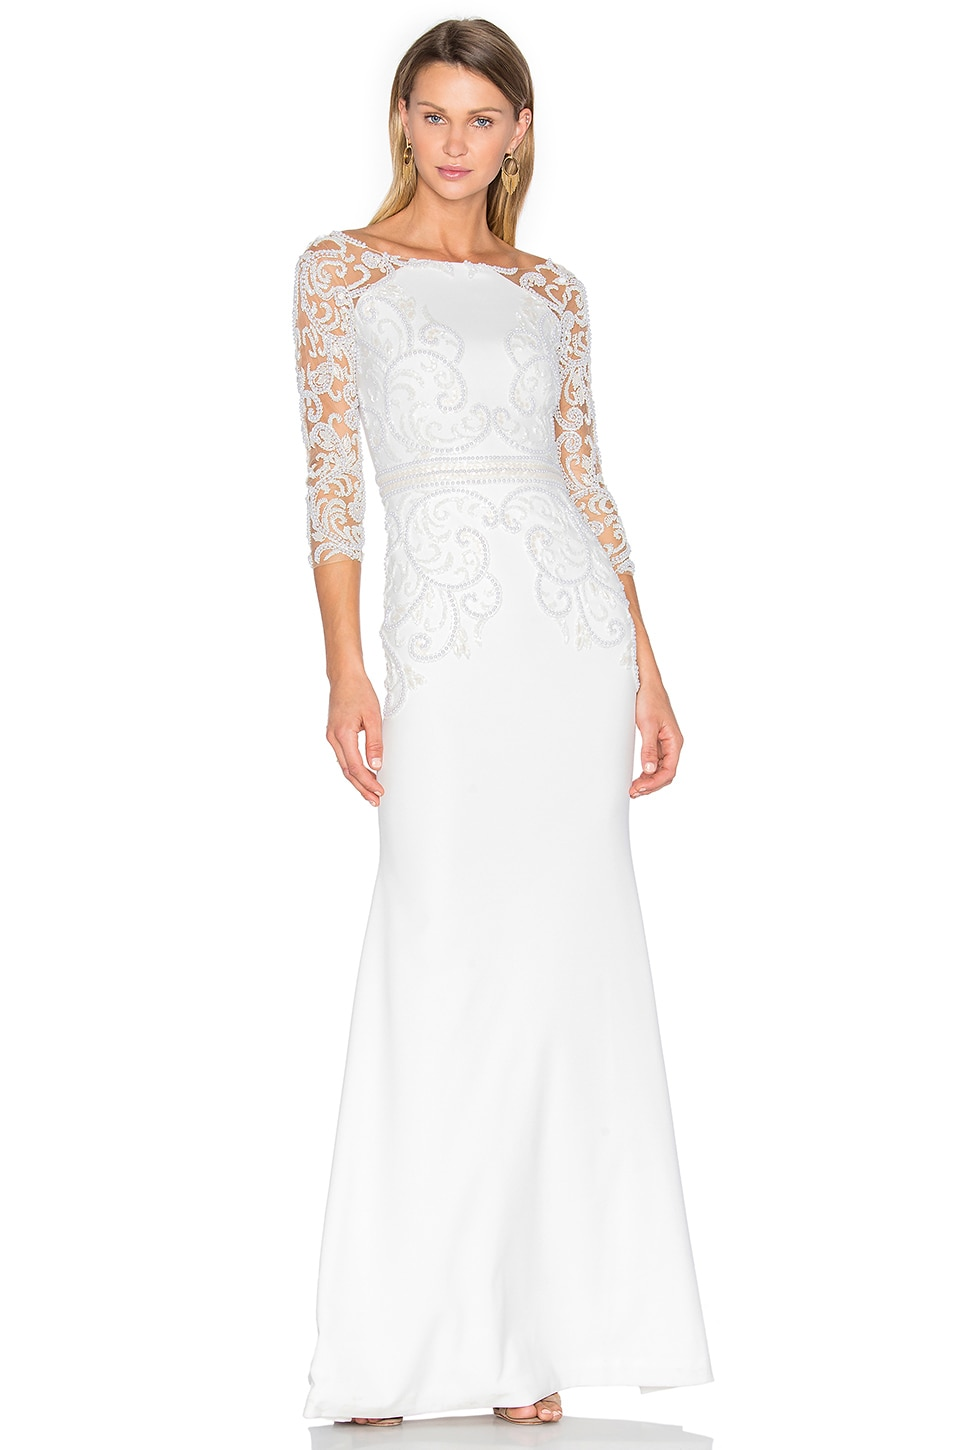 Patricia Bonaldi Long Sleeve Embellished Gown in White